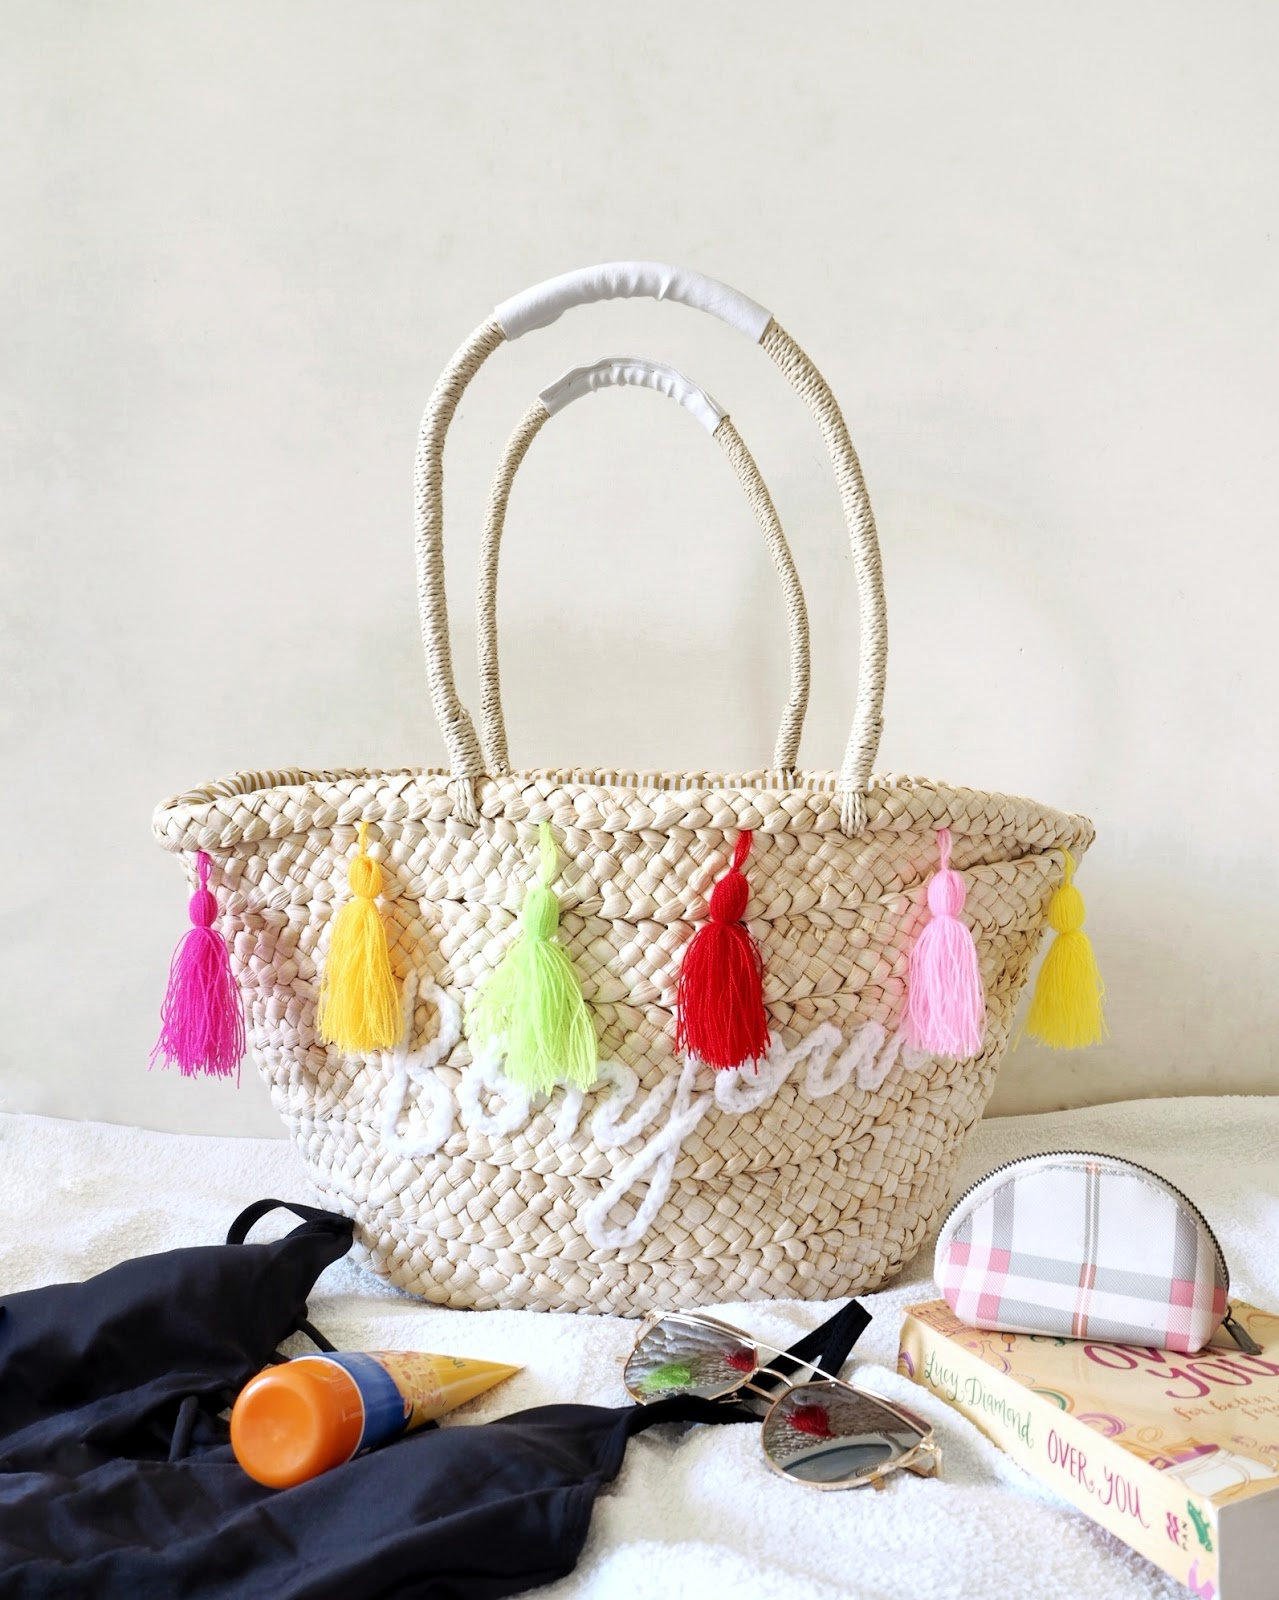 straw beach bag, rosegal straw bag, beach bag essentials